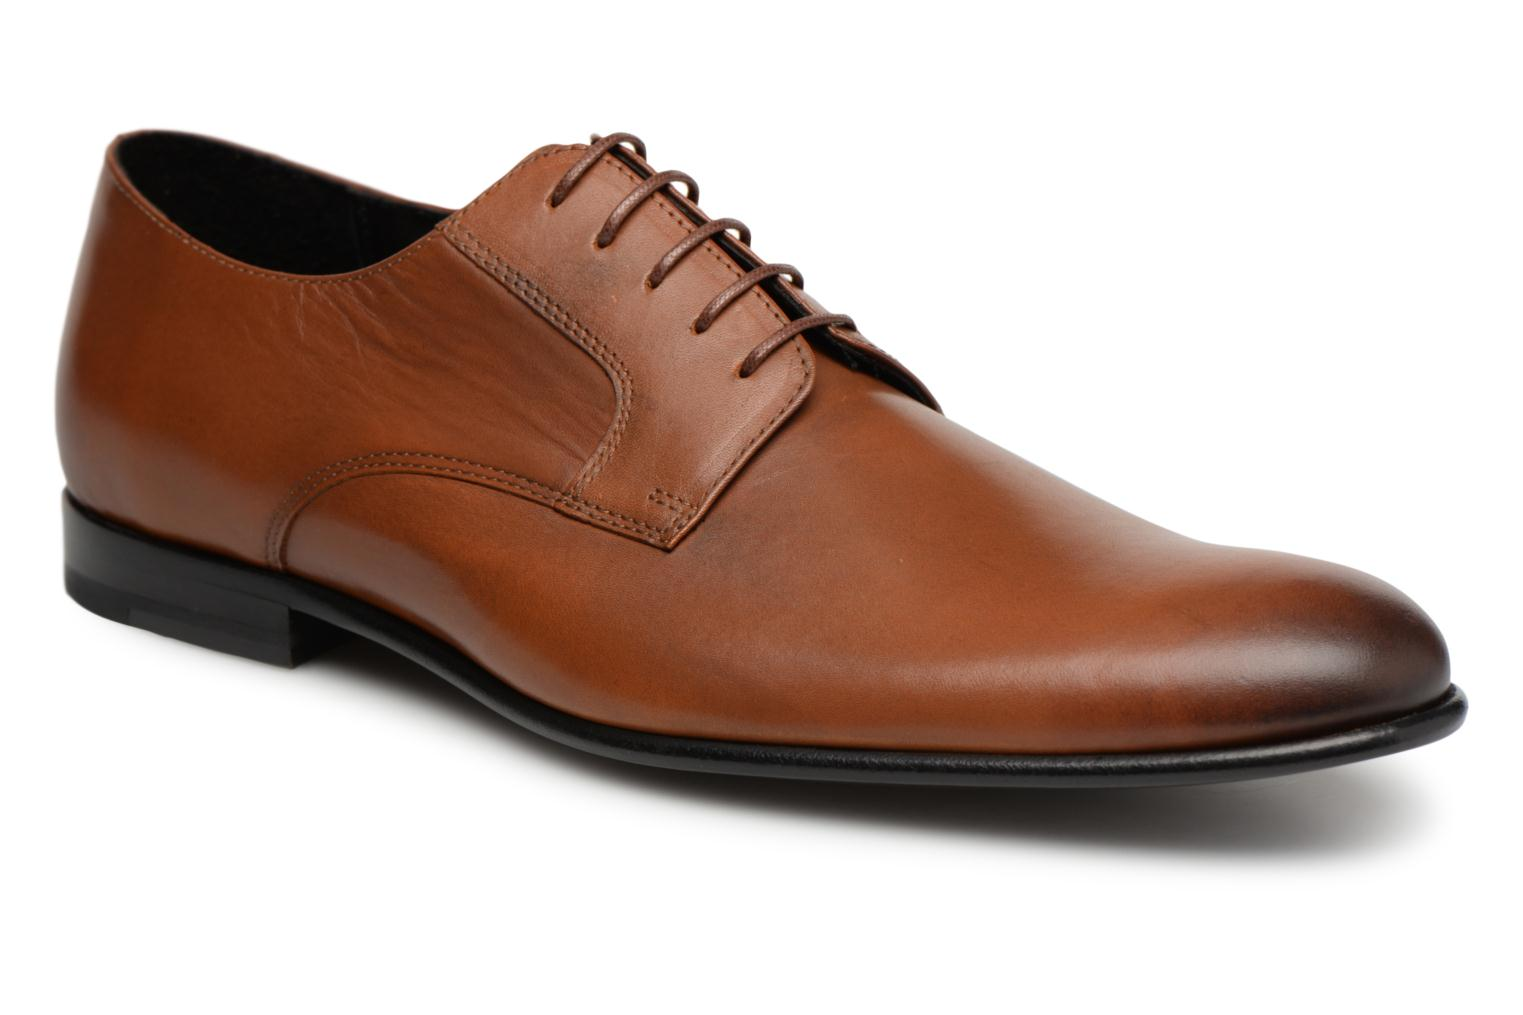 Marques Chaussure luxe homme Paul Smith homme Gould 62 BROWN